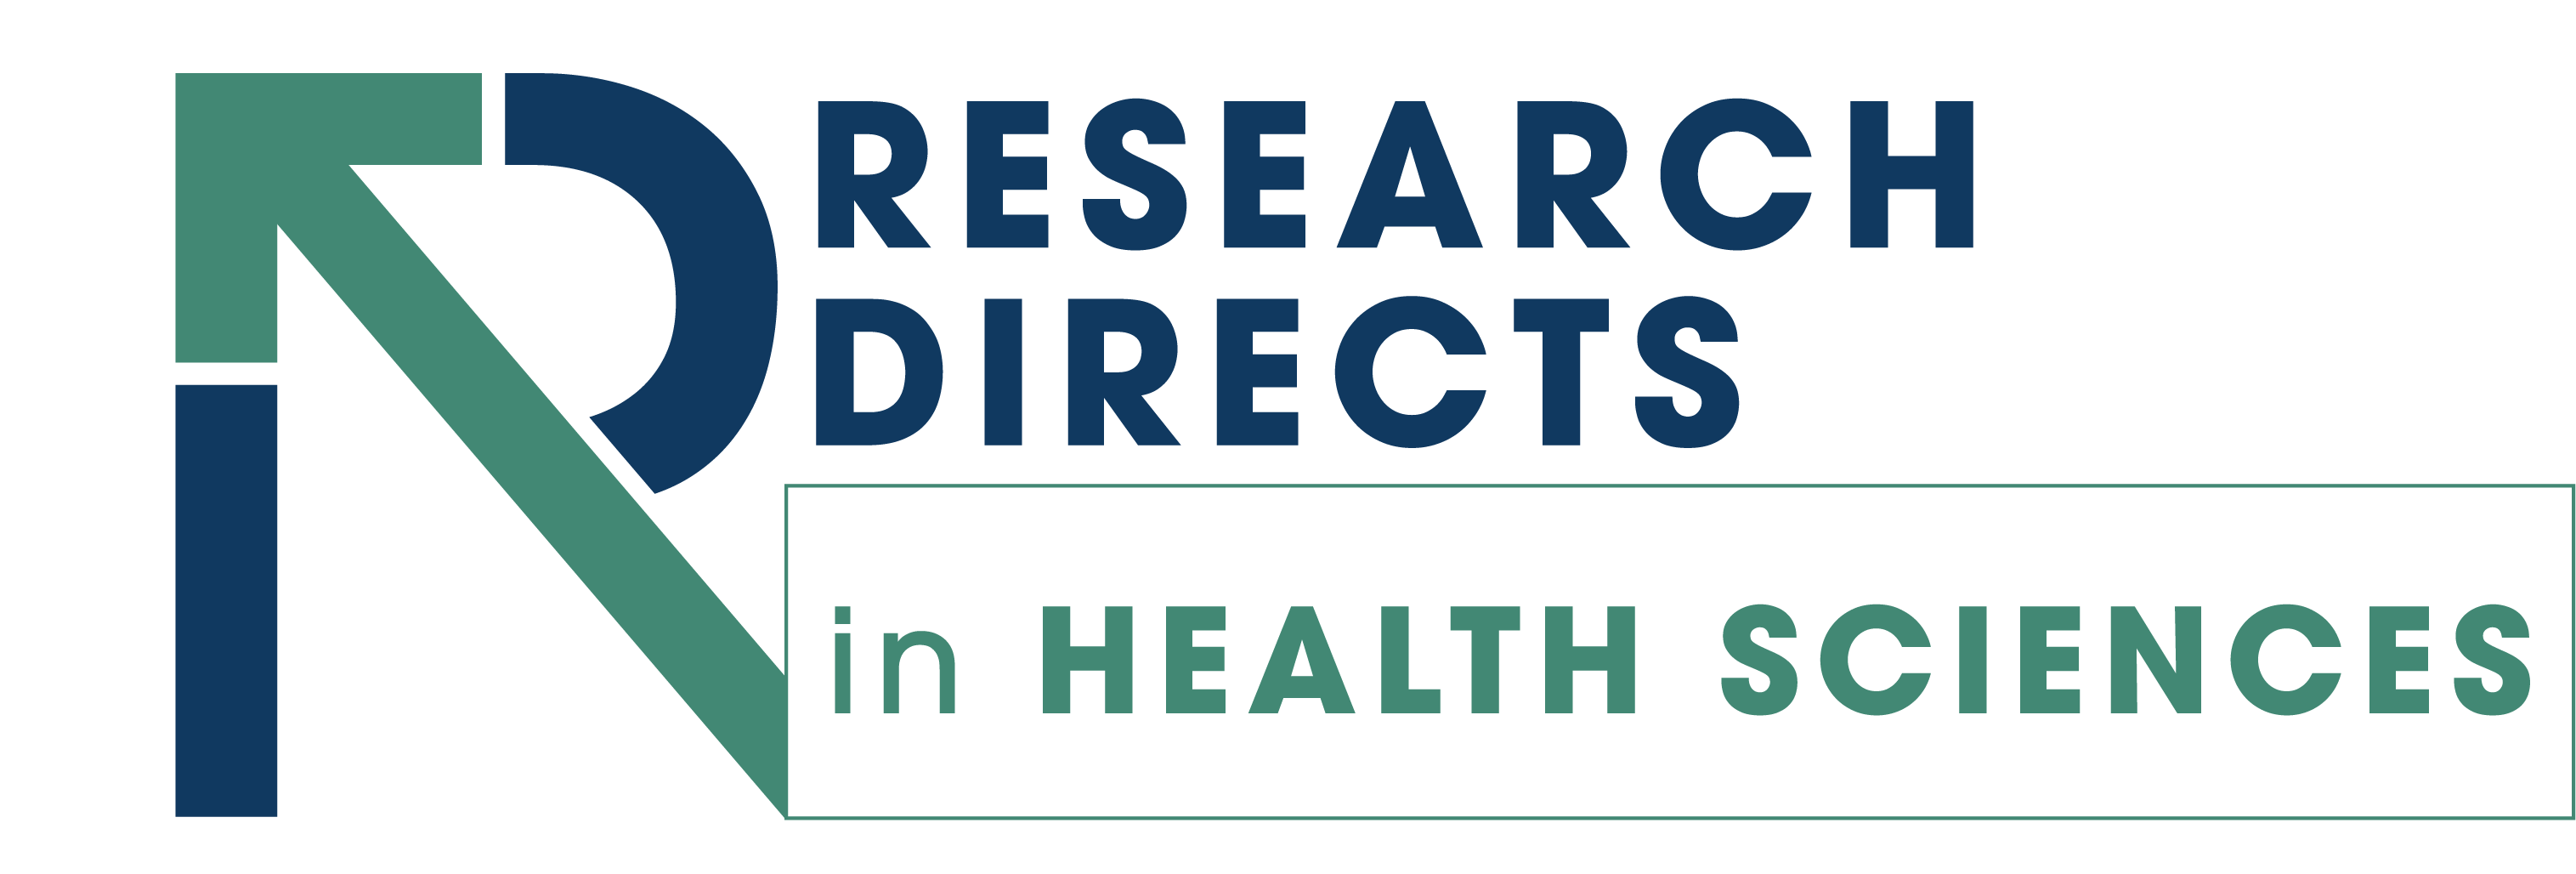 Research Directs in Health Sciences